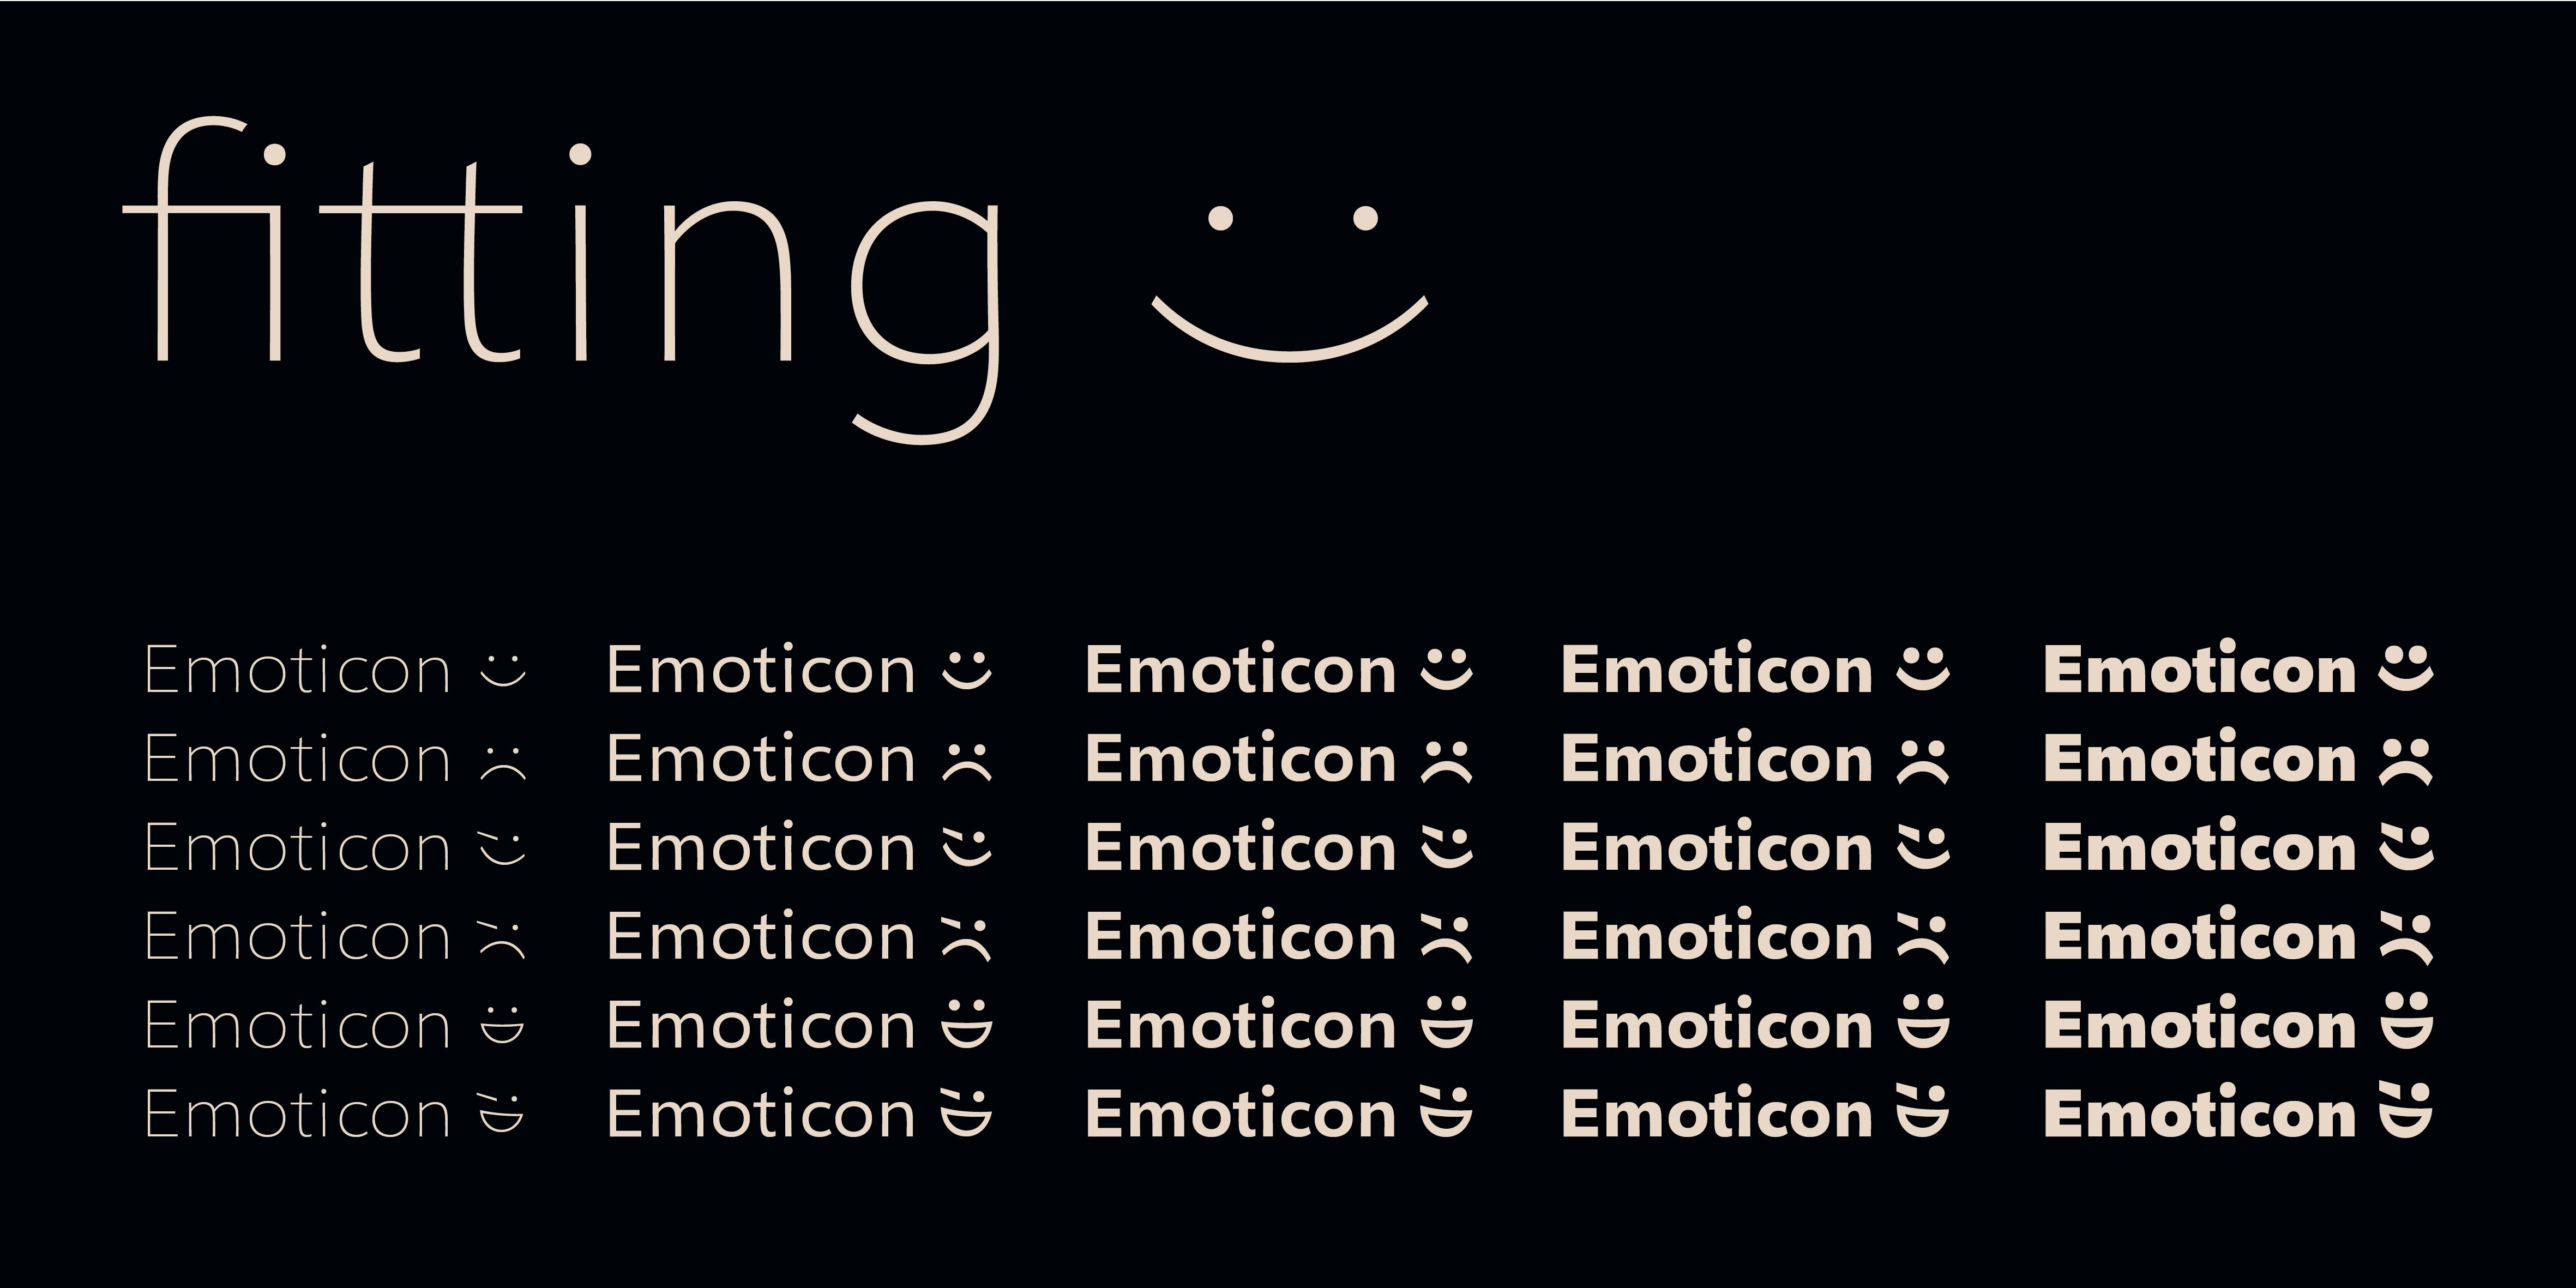 Poster: Emoticons coming with Geóso